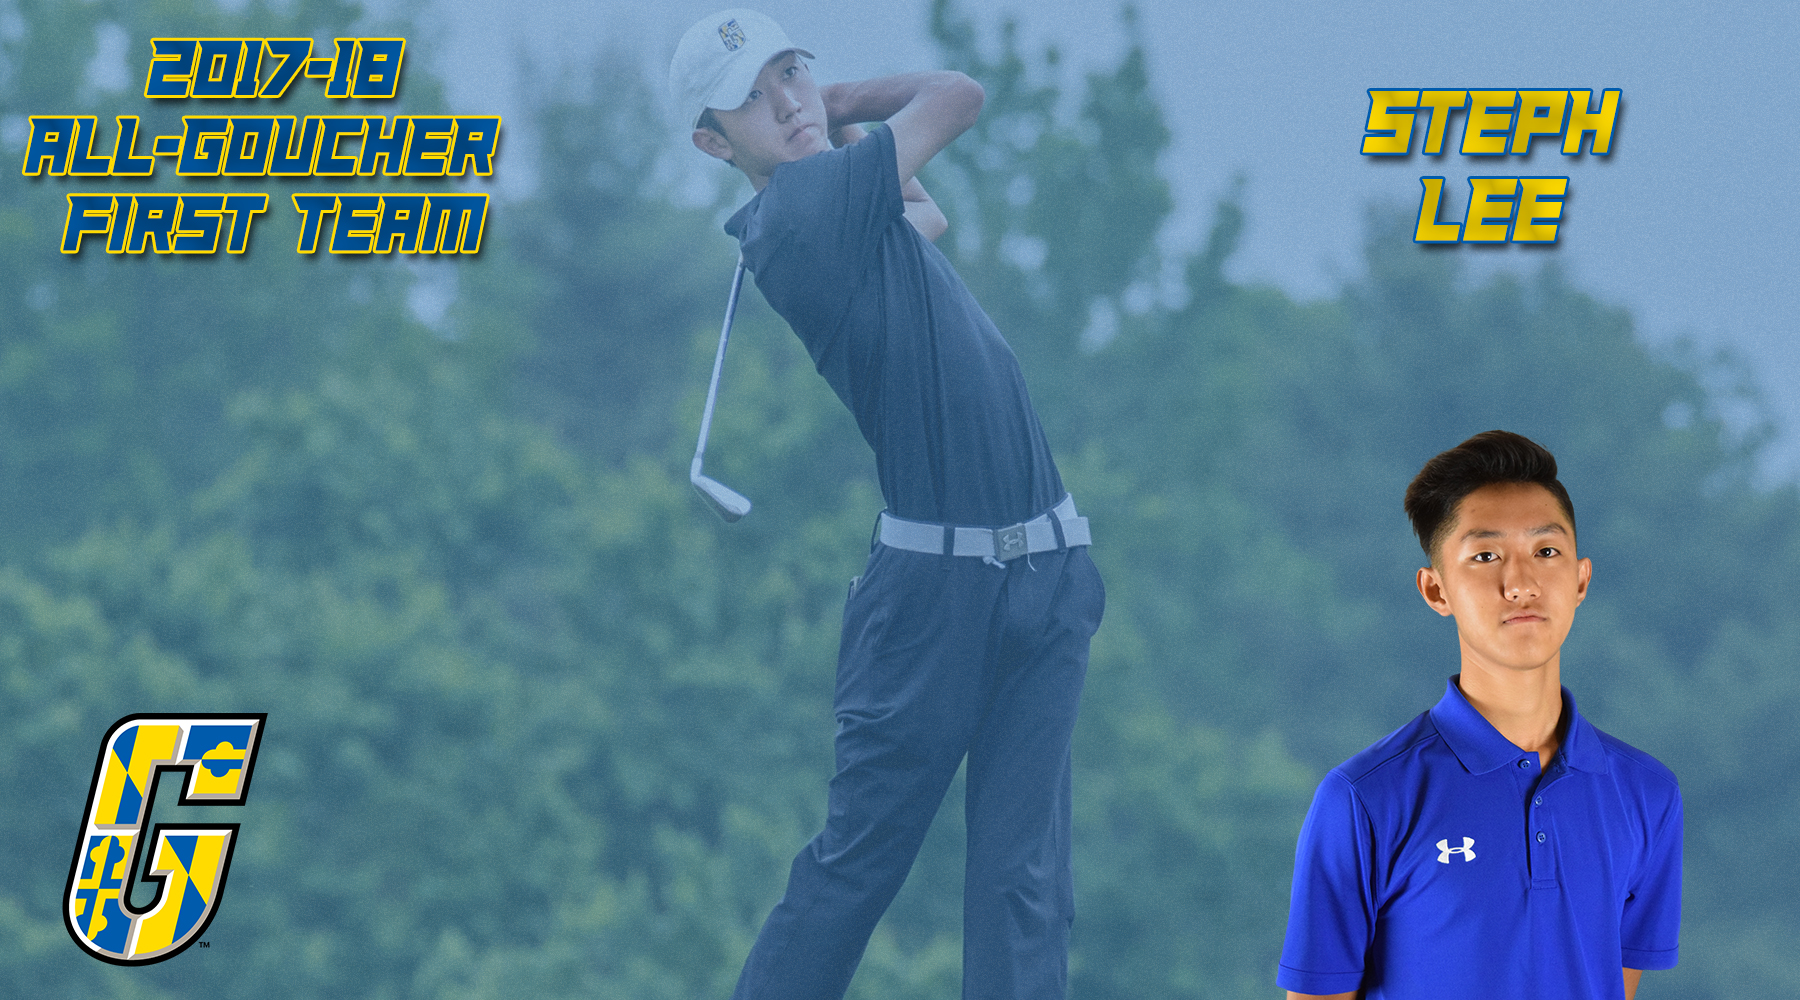 All-Goucher First Team Selection: Men's Golf's Steph Lee